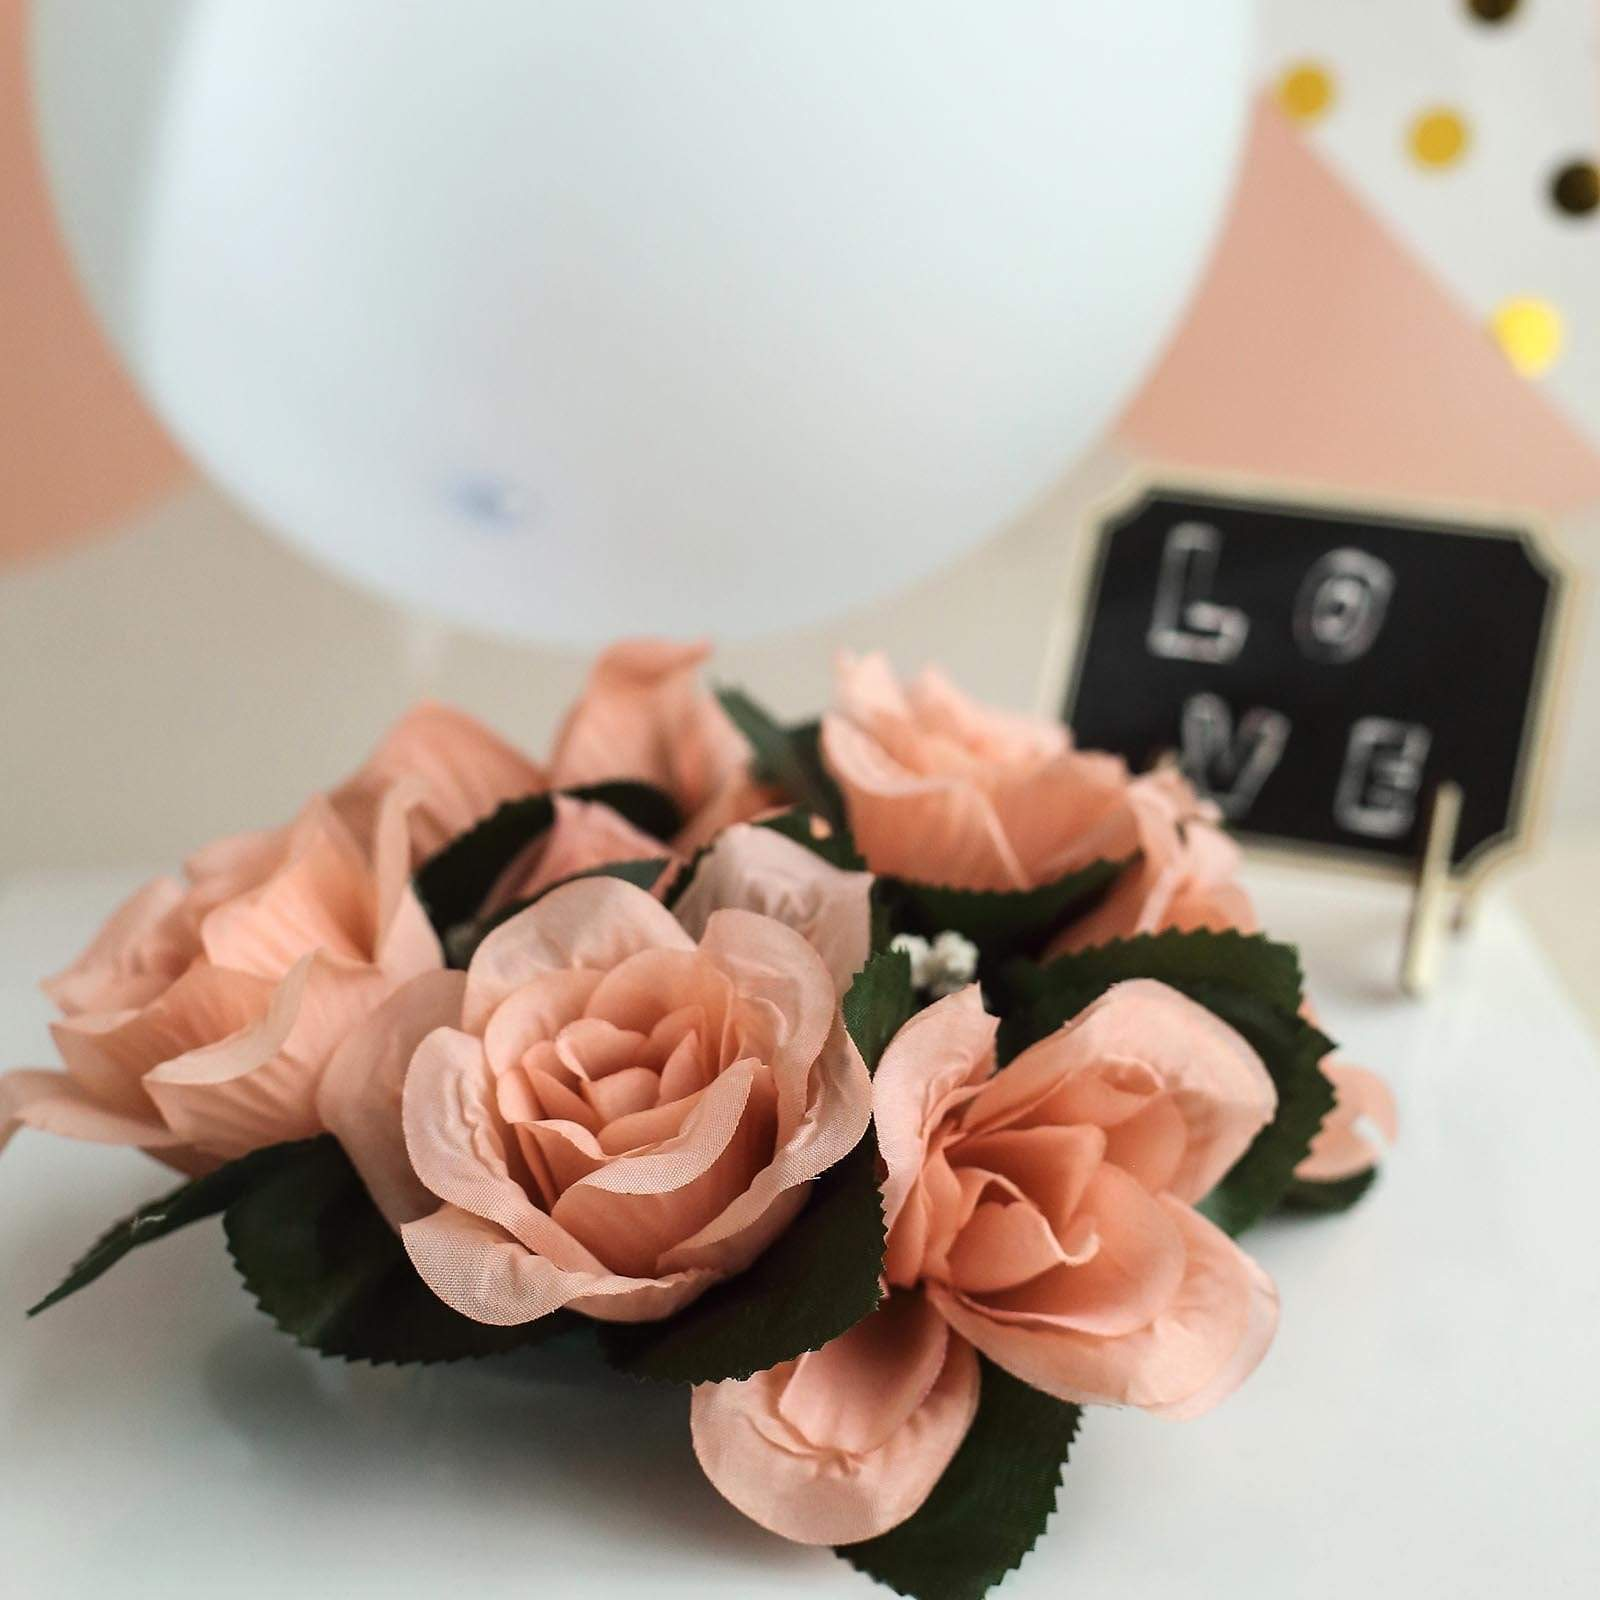 8 Candle Rings with Silk Roses Centerpieces - Dusty Rose ARTI_RING_080